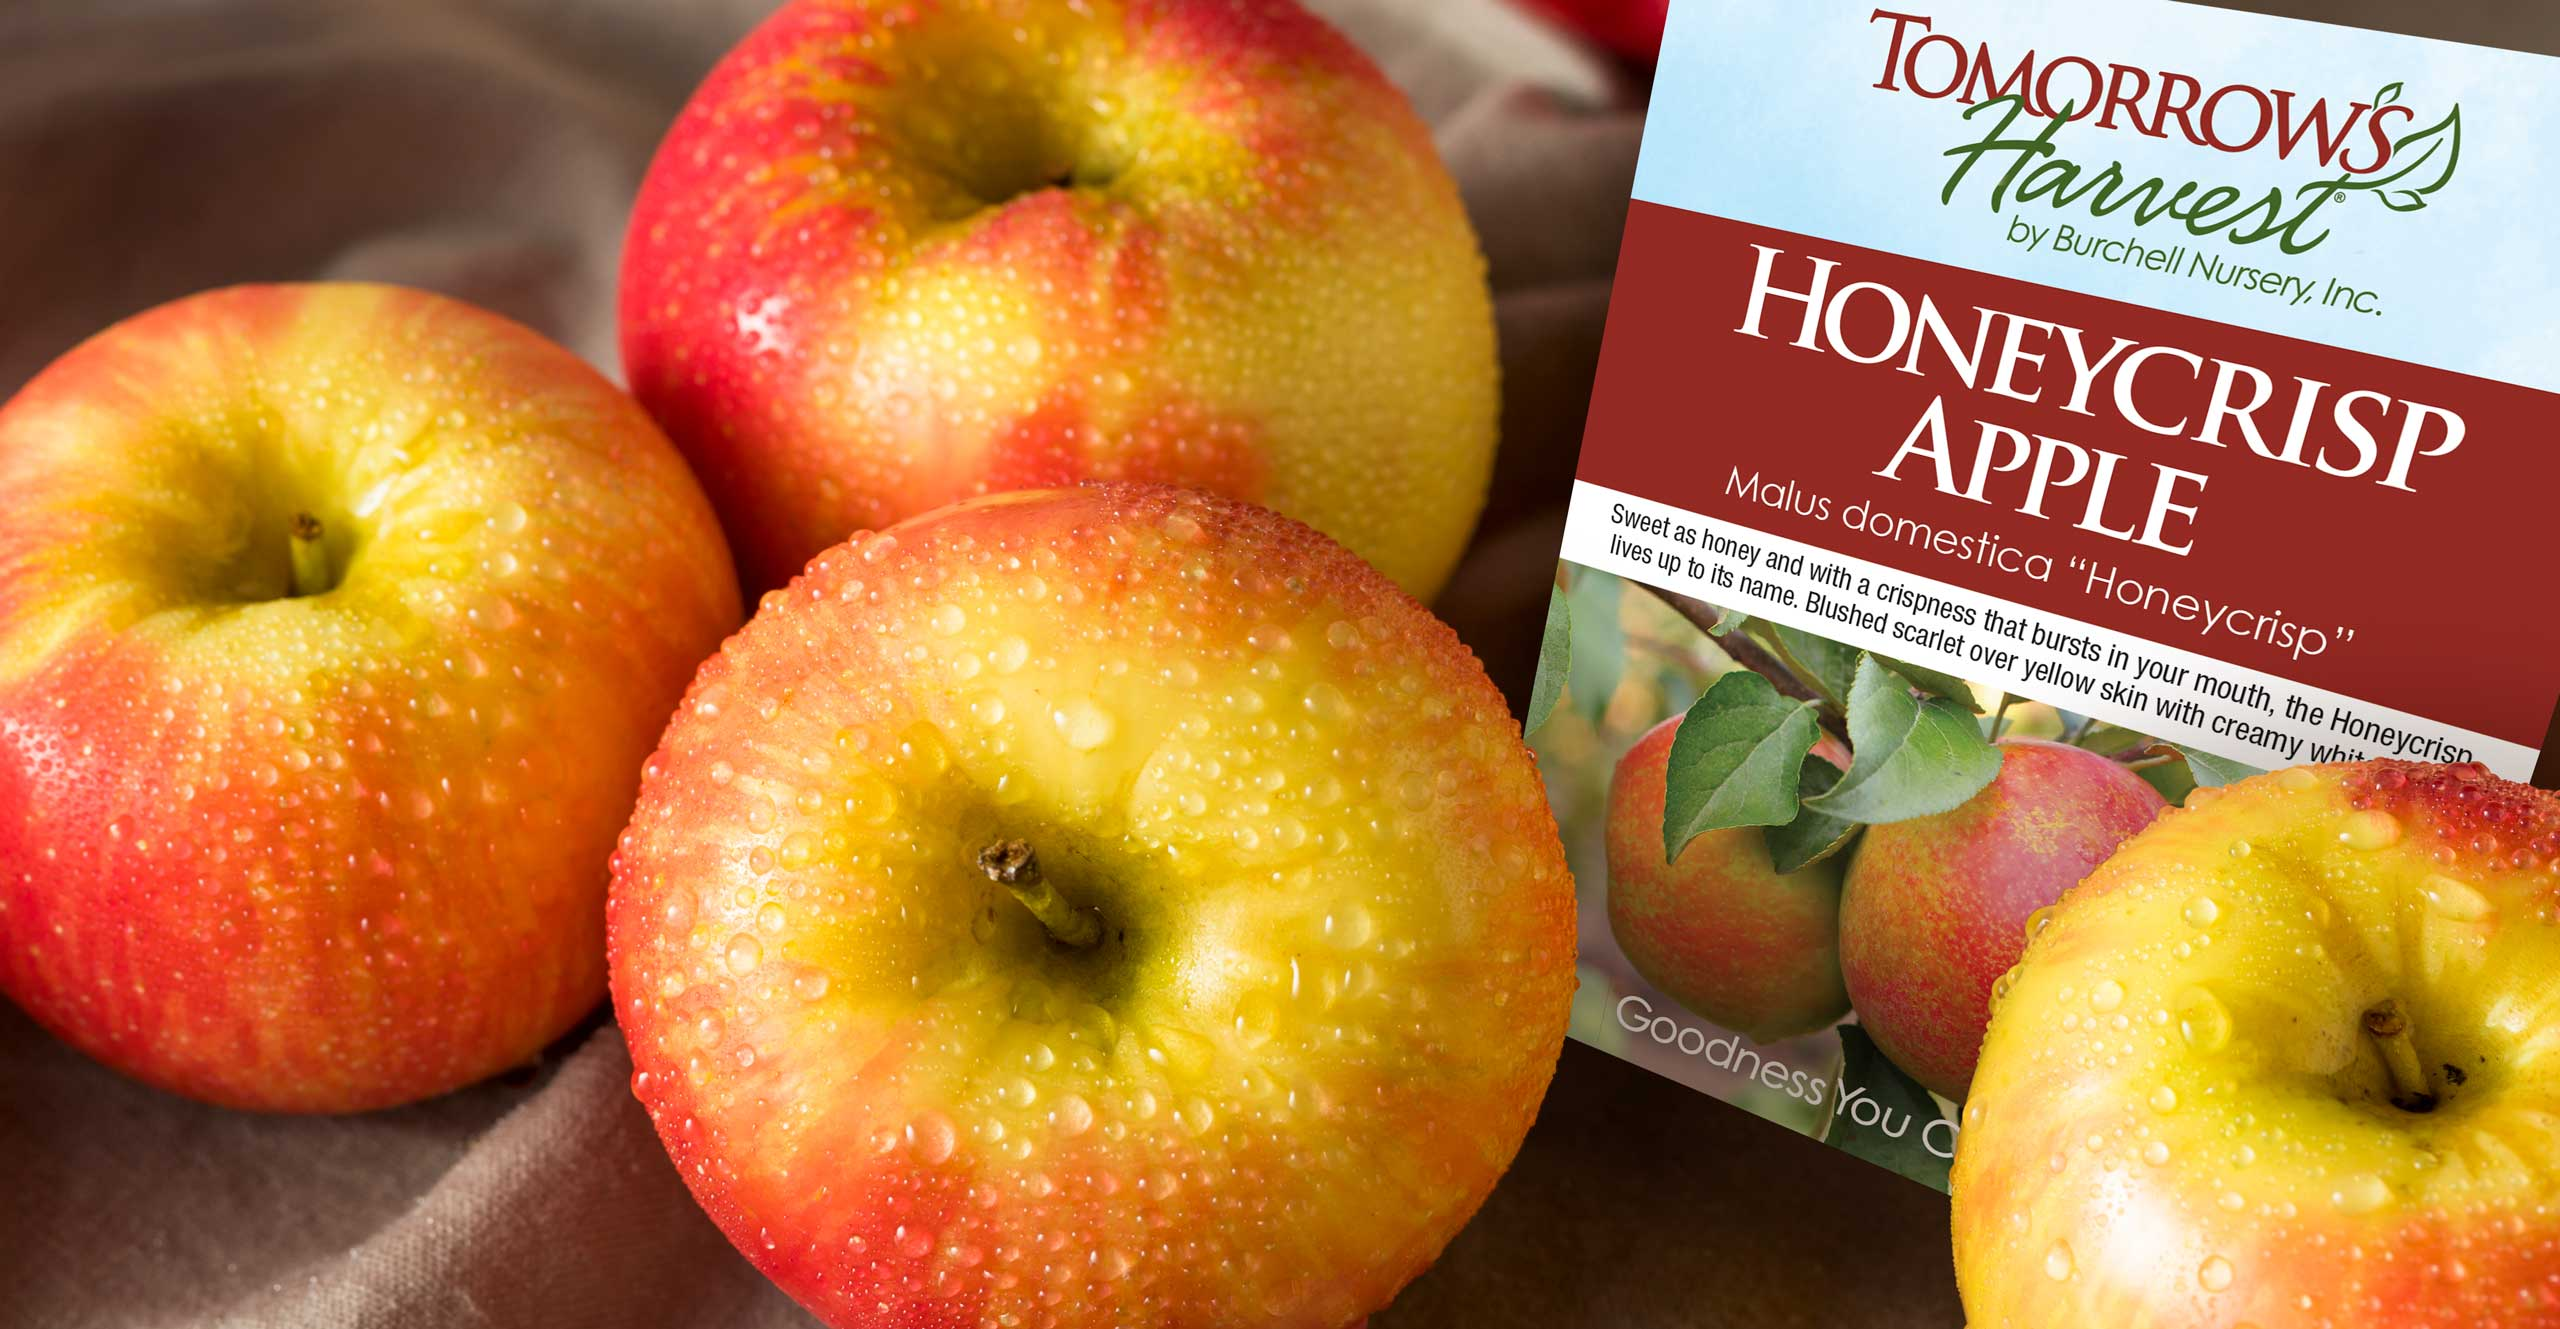 Honeycrisp Apples with Tomorrows Harvest by Burchell Nursery Retail Tag